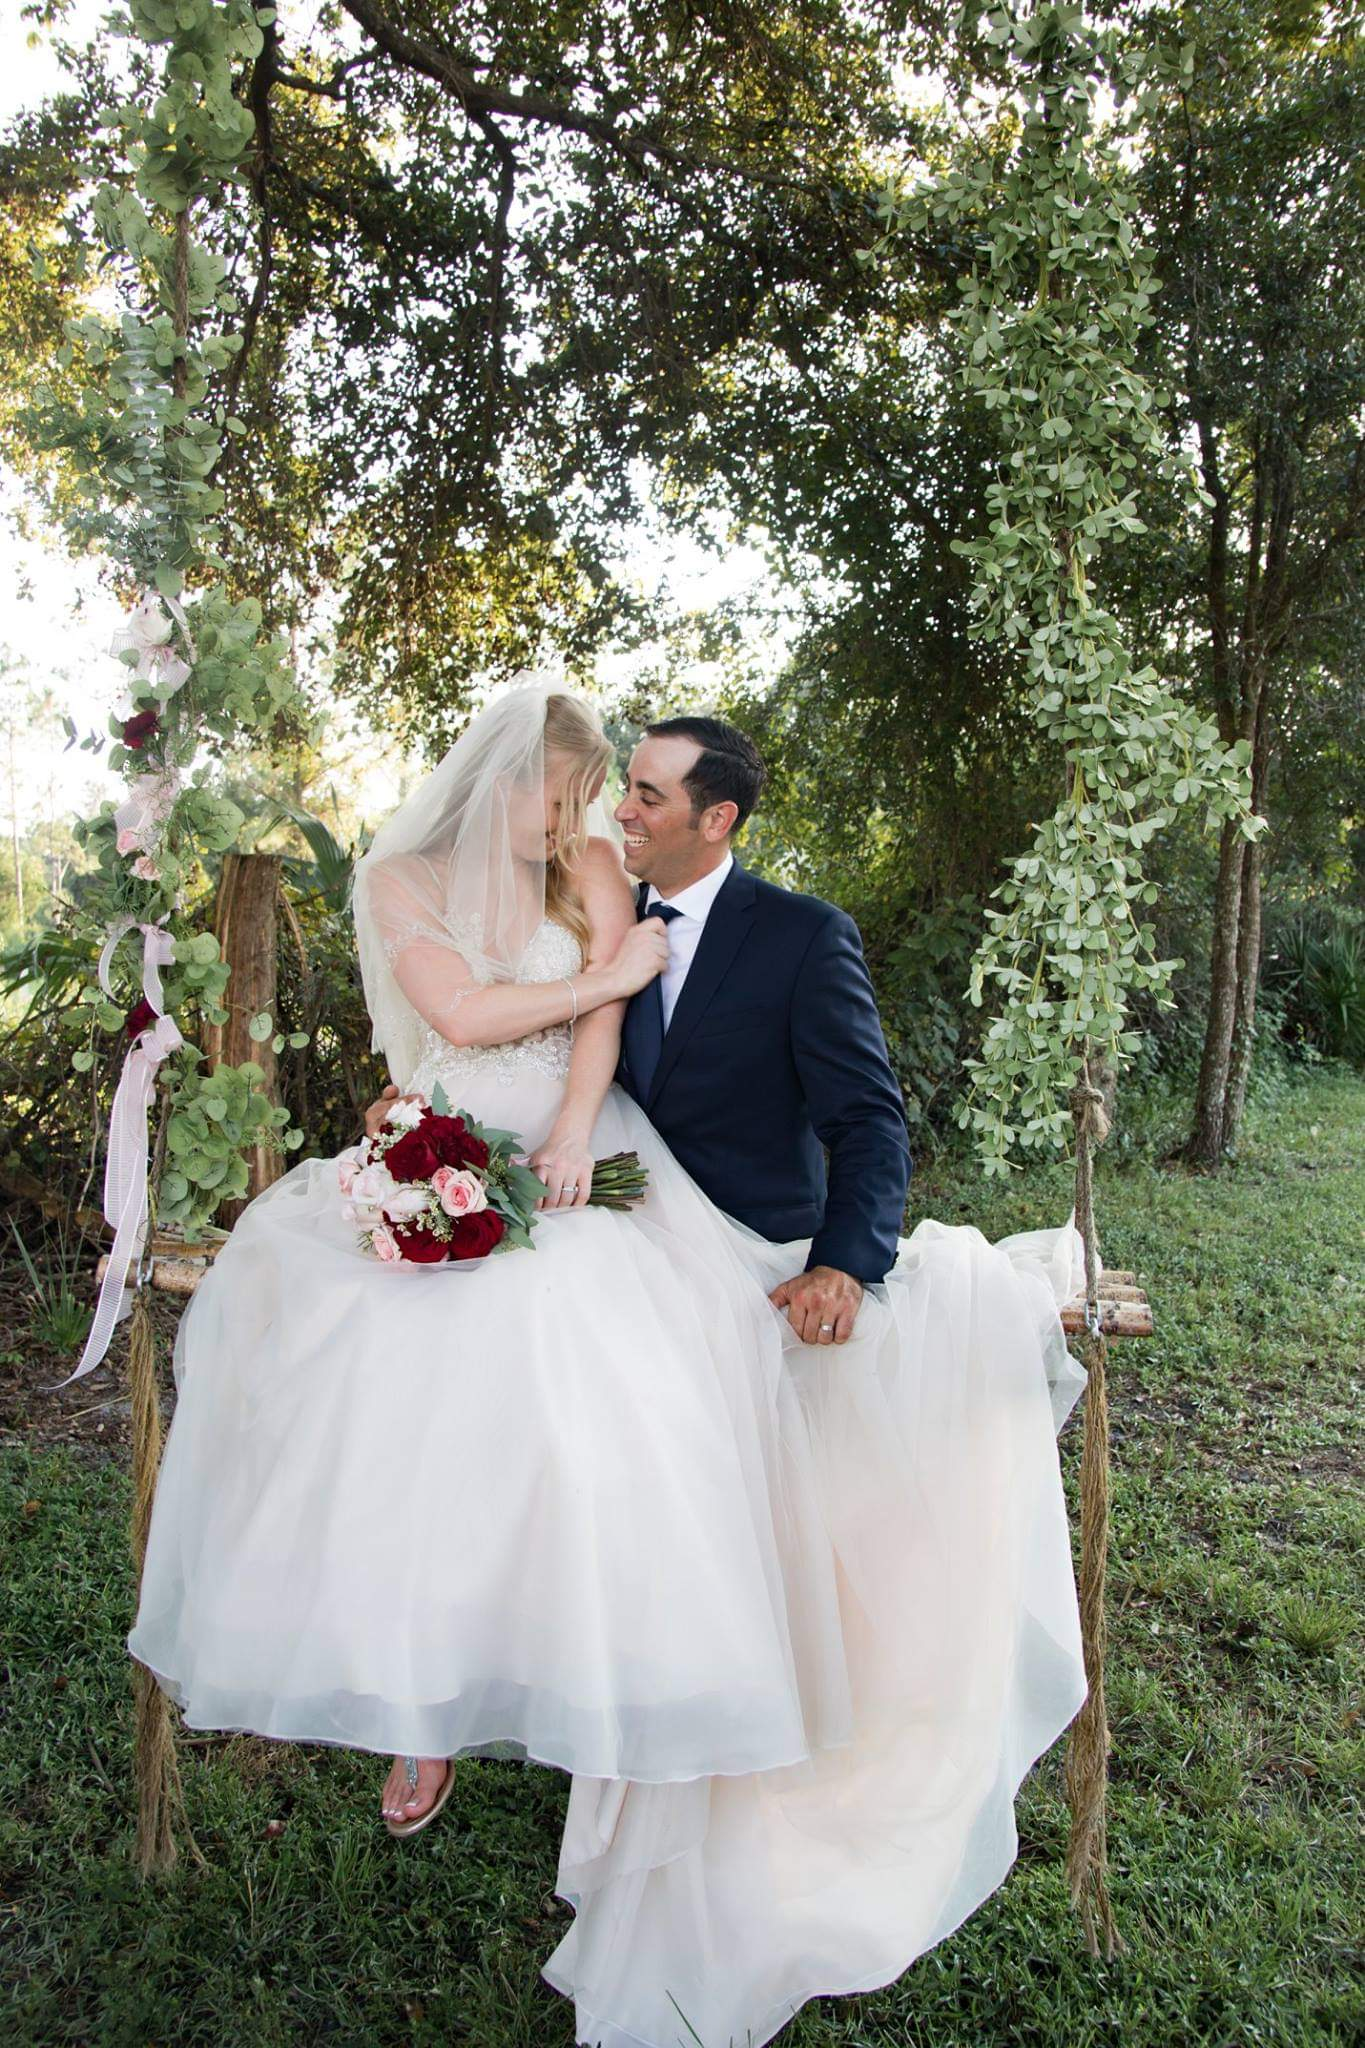 The Enchanting Barn - bride and groom on outdoor swing